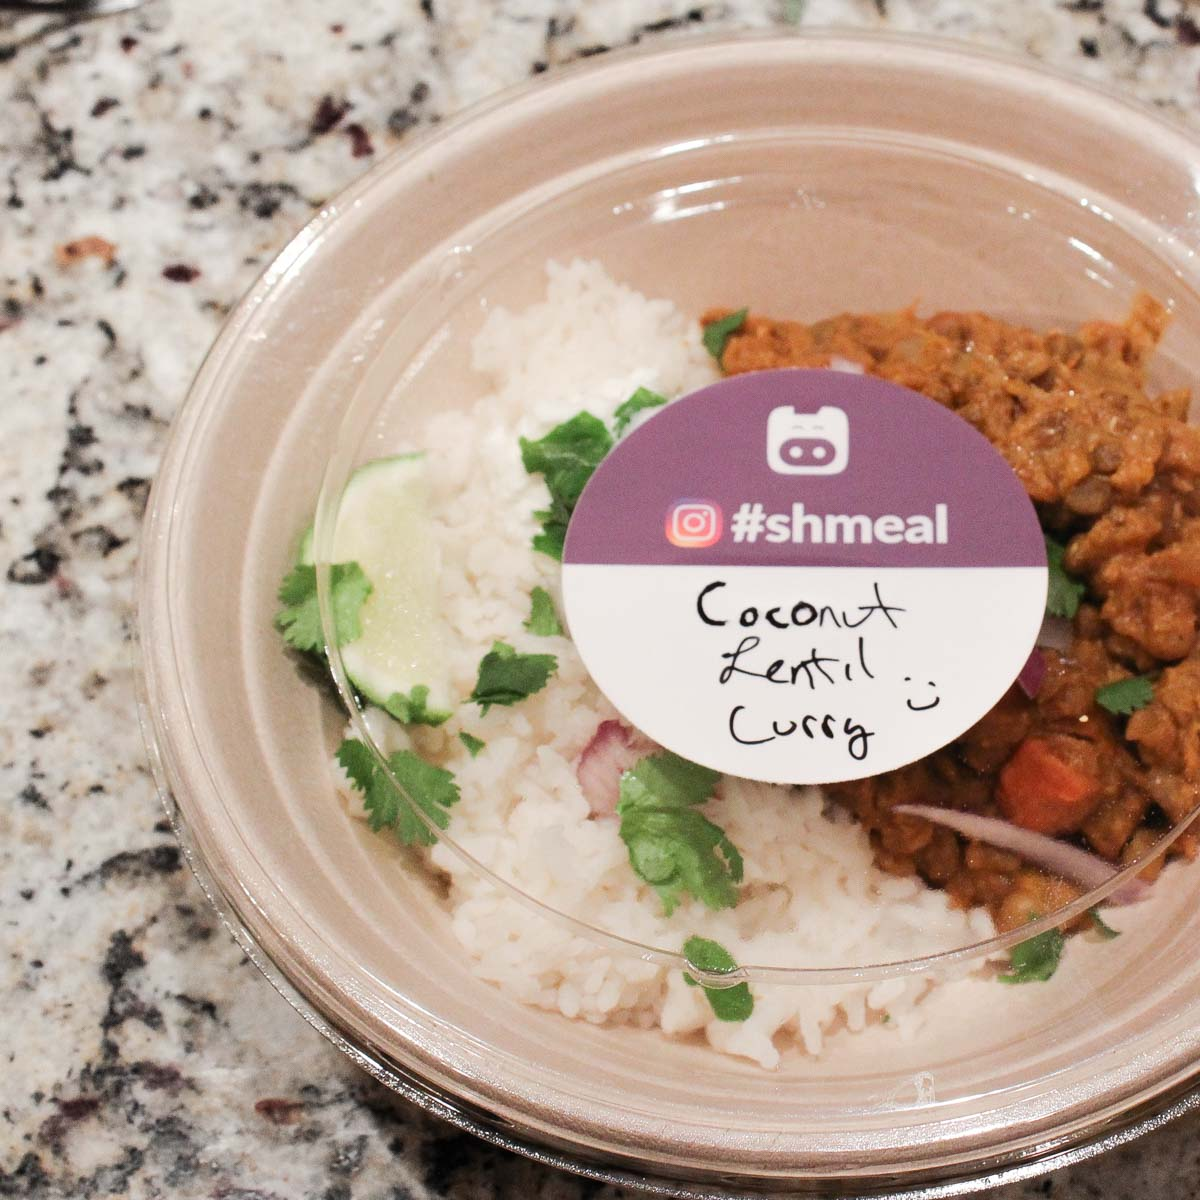 Coconut lentil curry in a Shmeal bowl